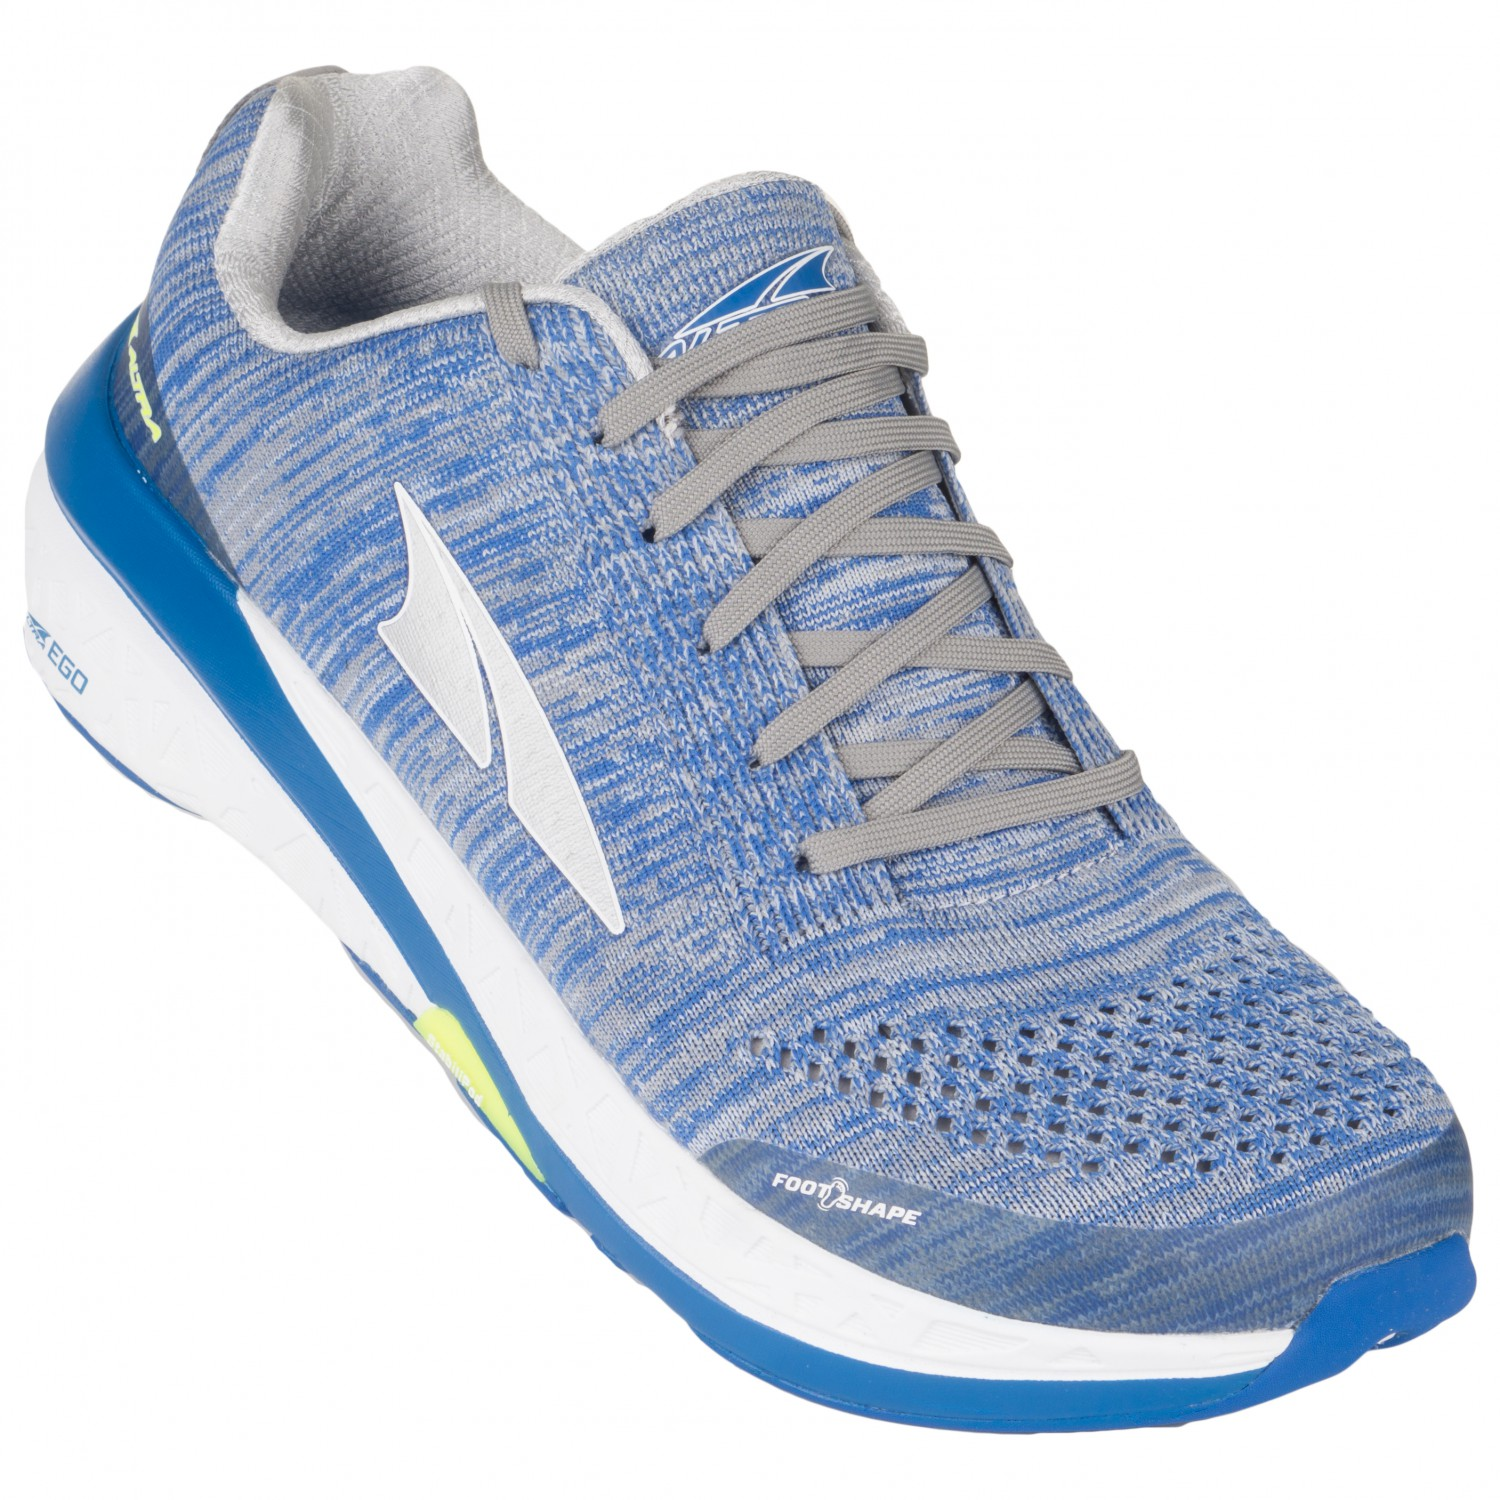 online store 74da2 7e50f Altra - Paradigm 4 - Running shoes - White / Blue | 8,5 (US)